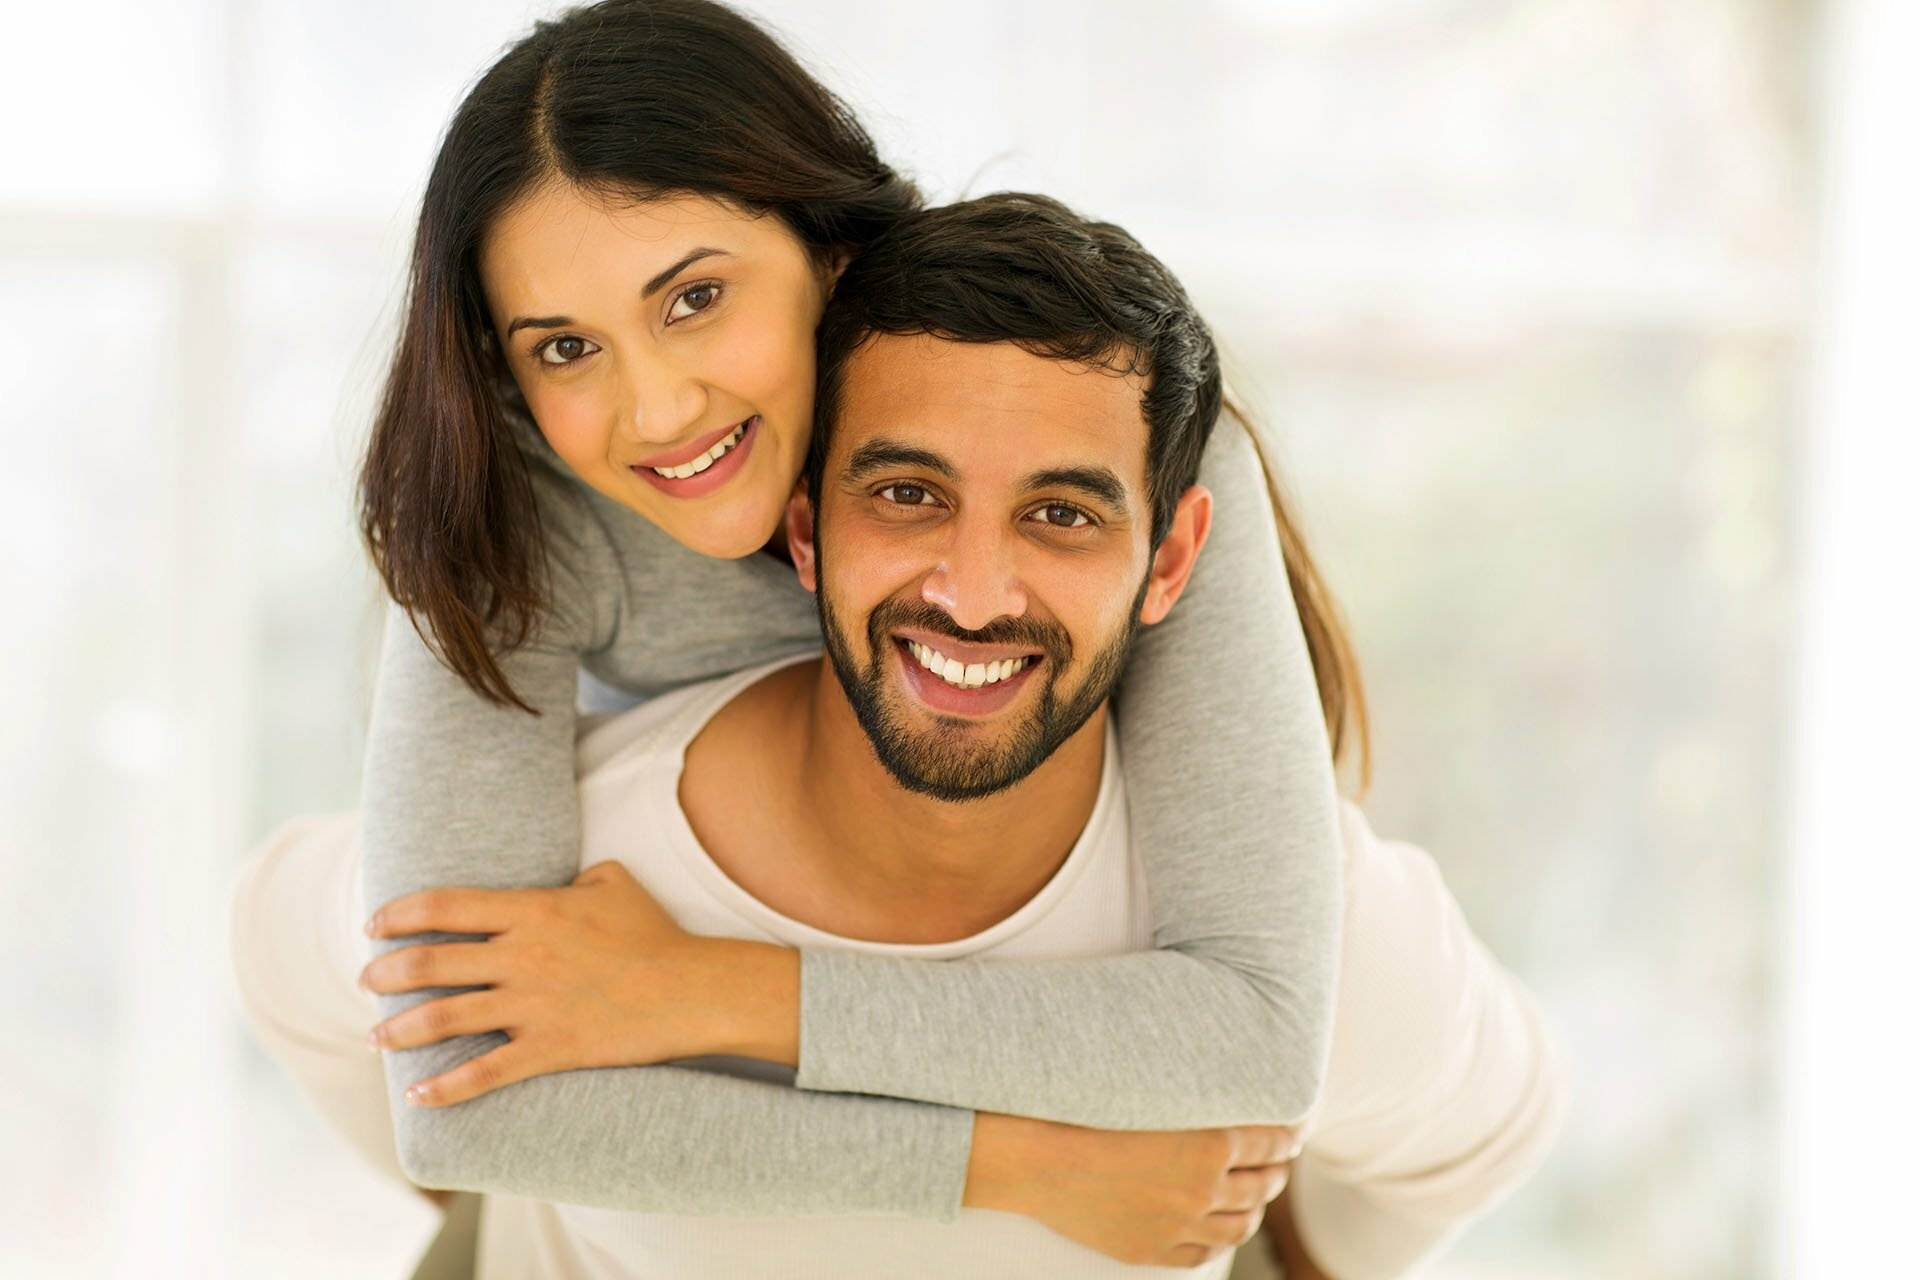 Image of Young Australian Multicultural Couple - NBS Home Loans offer Best Home Loans for All Australians